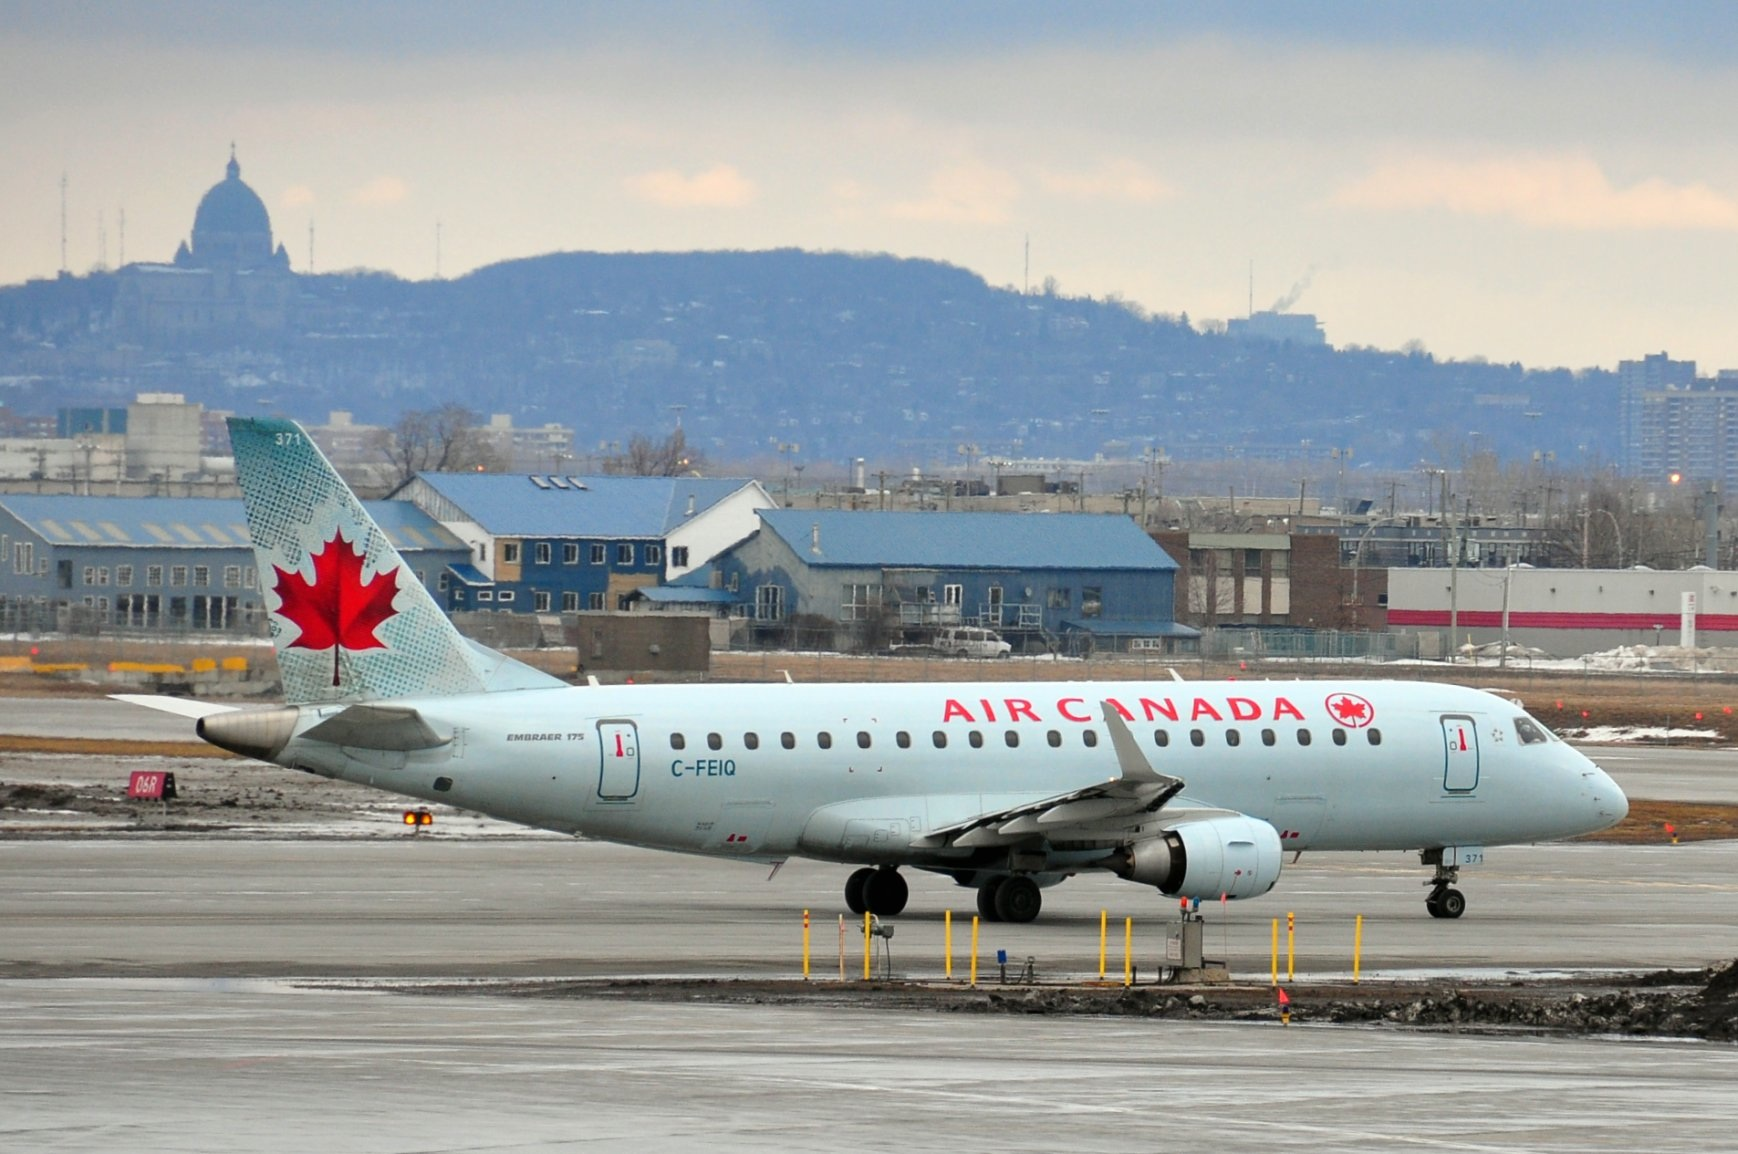 C-FEIQ Air Canada Embraer 175 par abdallahh sous (CC BY 2.0) https://www.flickr.com/photos/husseinabdallah/4485099817/ https://creativecommons.org/licenses/by/2.0/